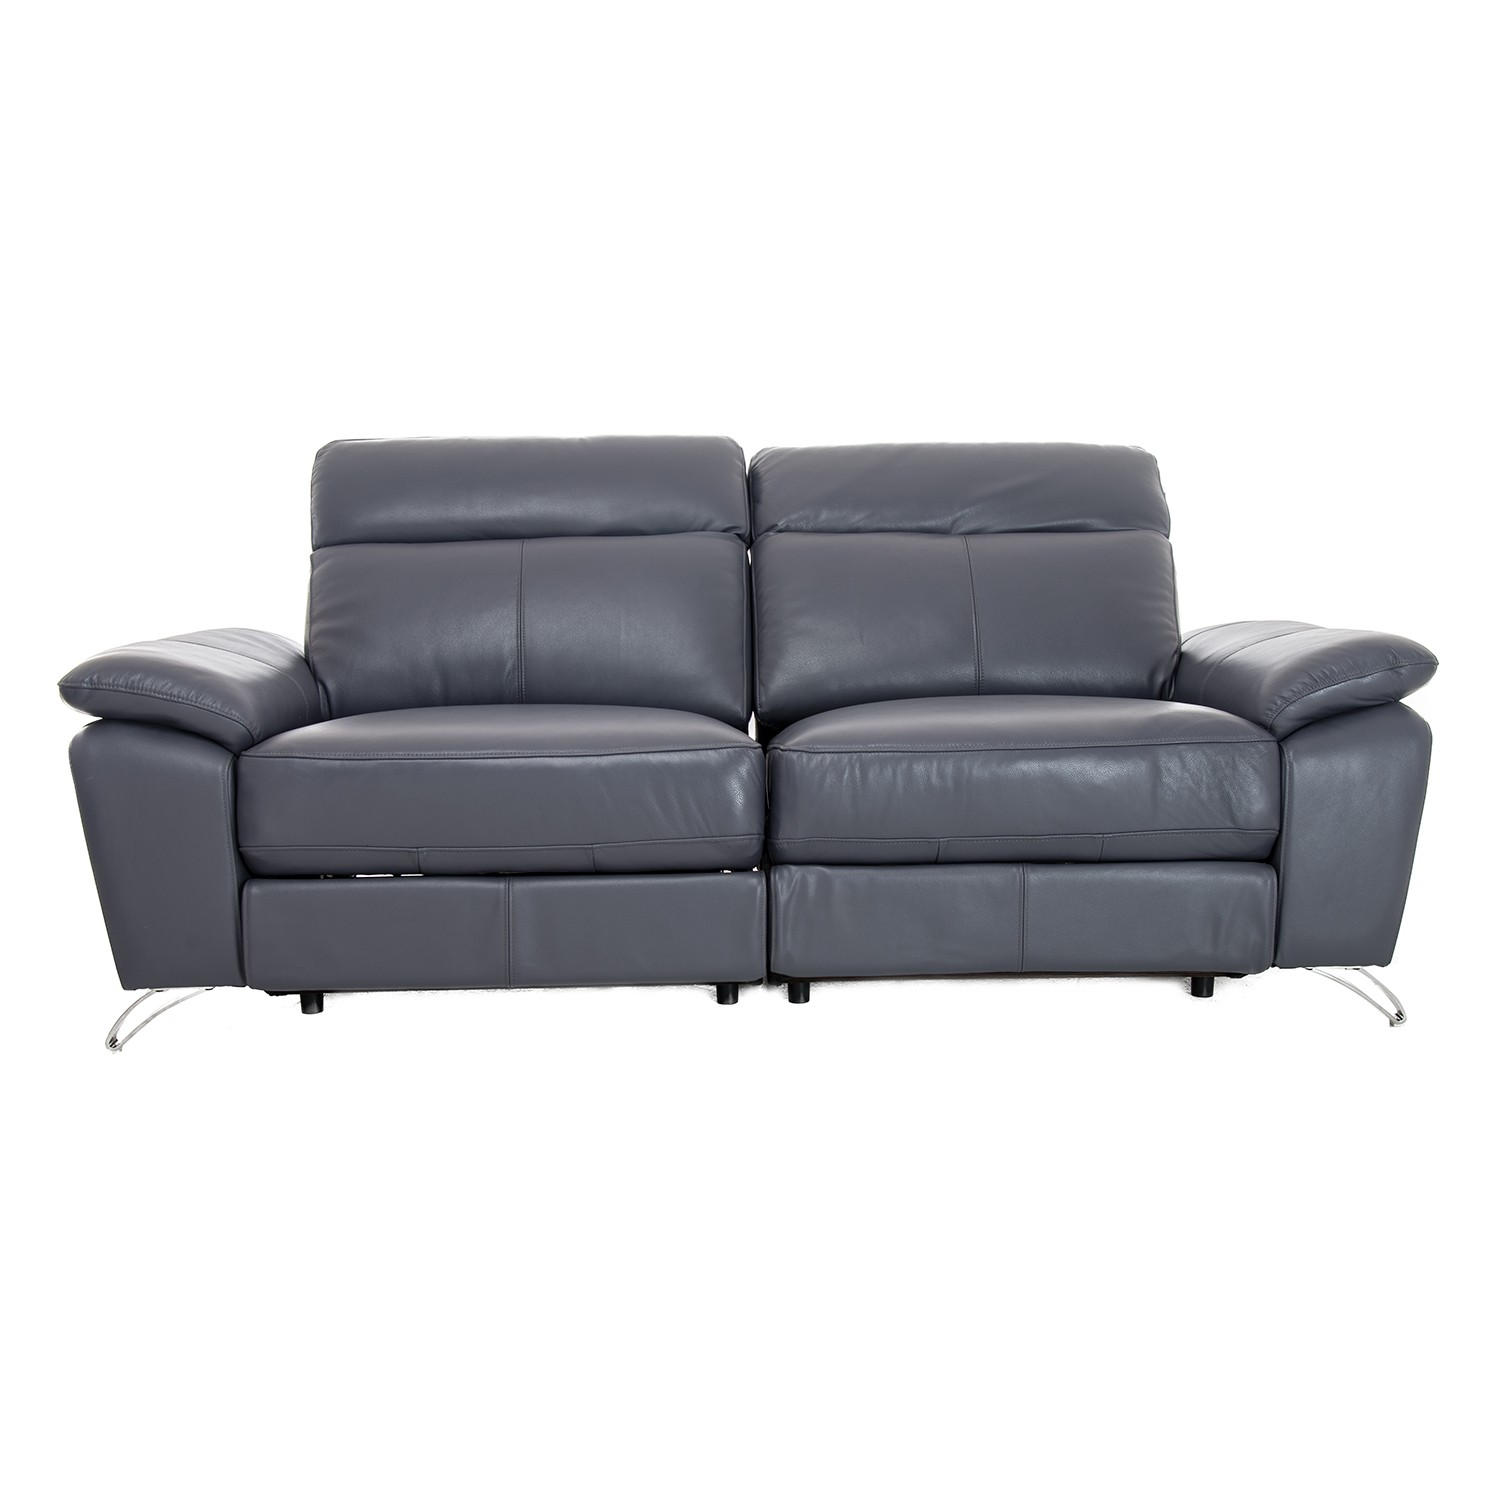 Vivaldi Two Five Seater Power Recliner Leather Sofa